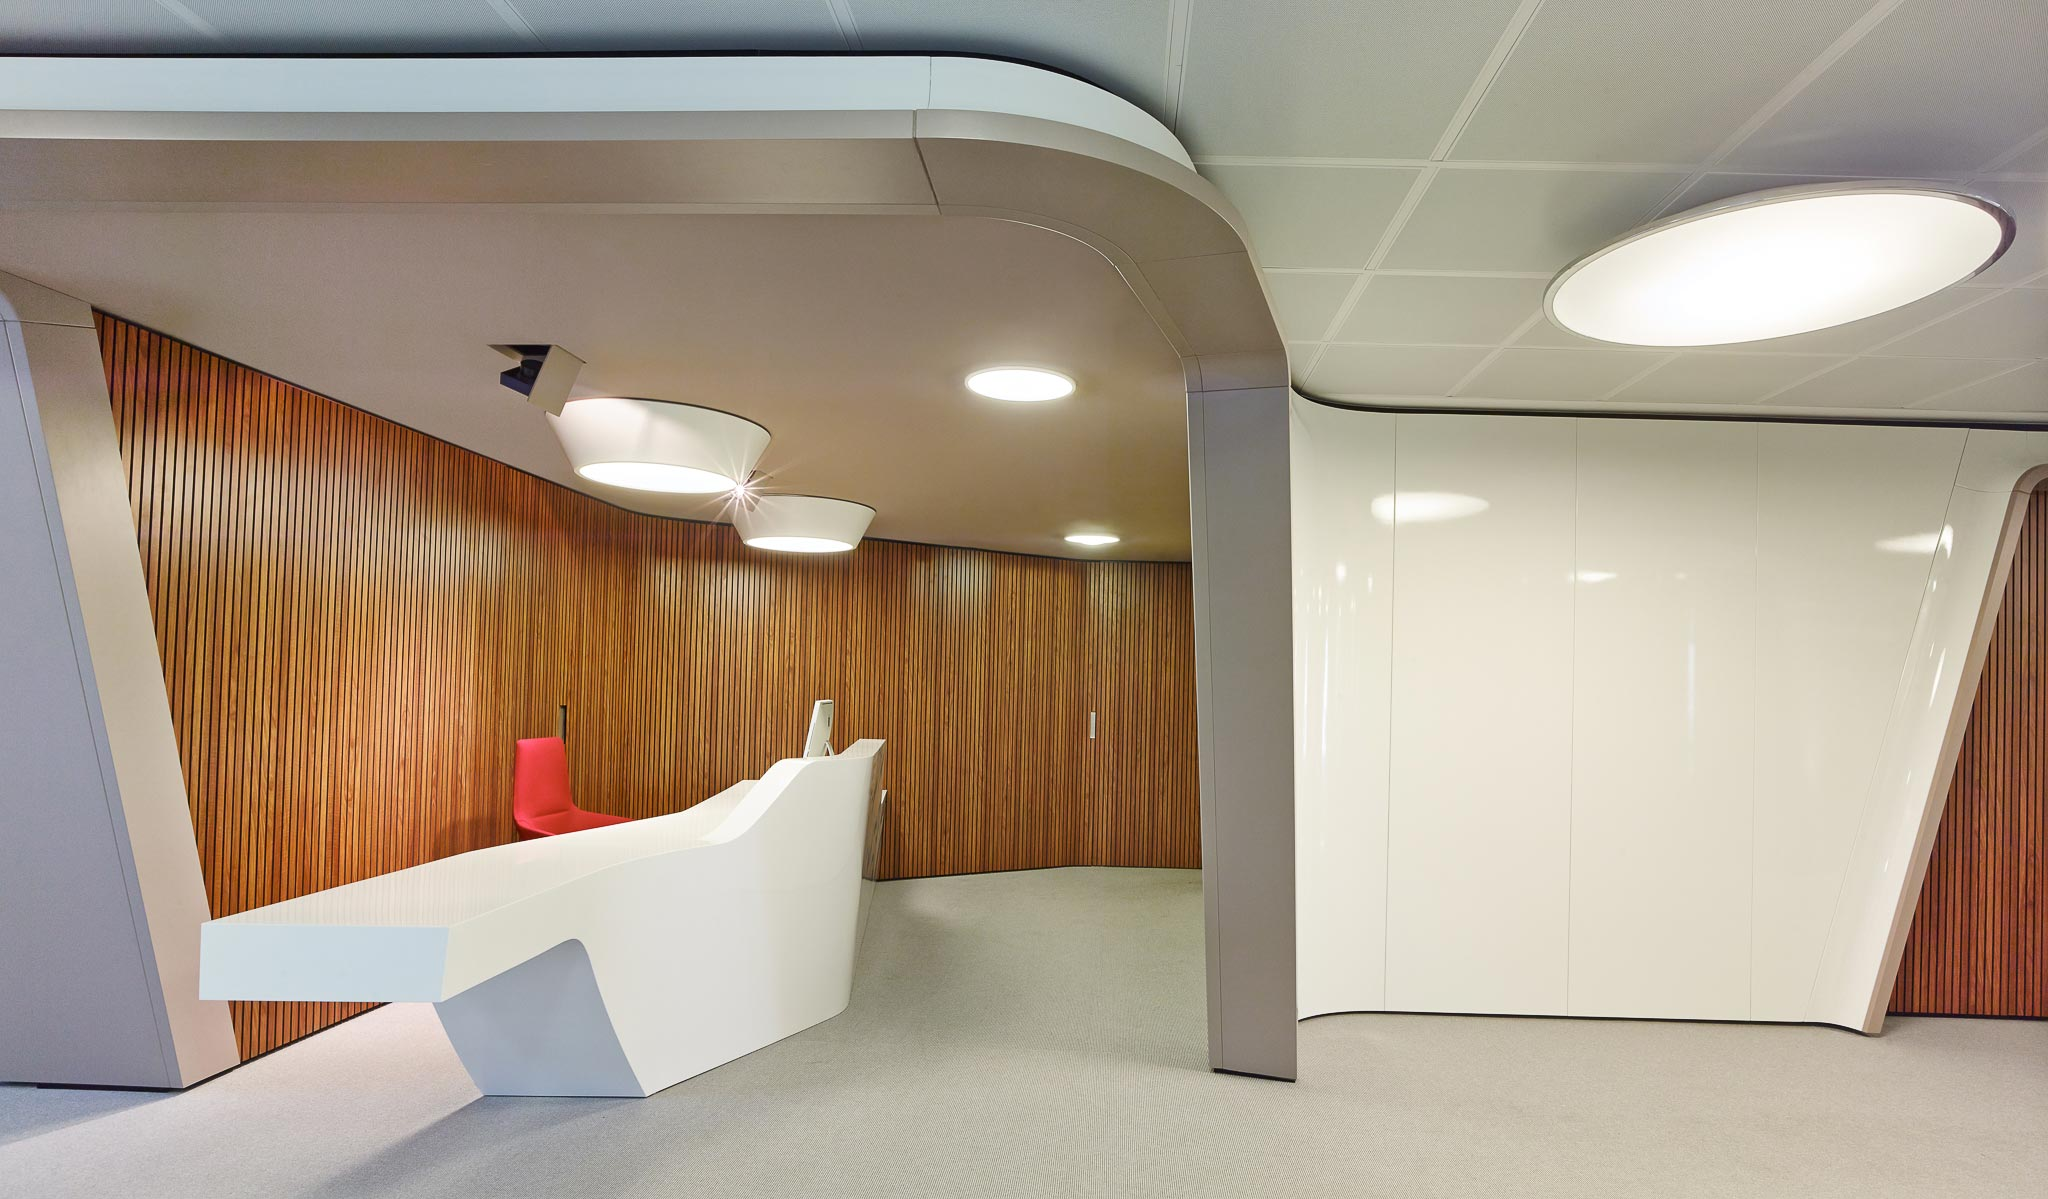 WE CREATE DISTINCTIVE CORPORATE ARCHITECTURE AND INTERIOR DESIGN